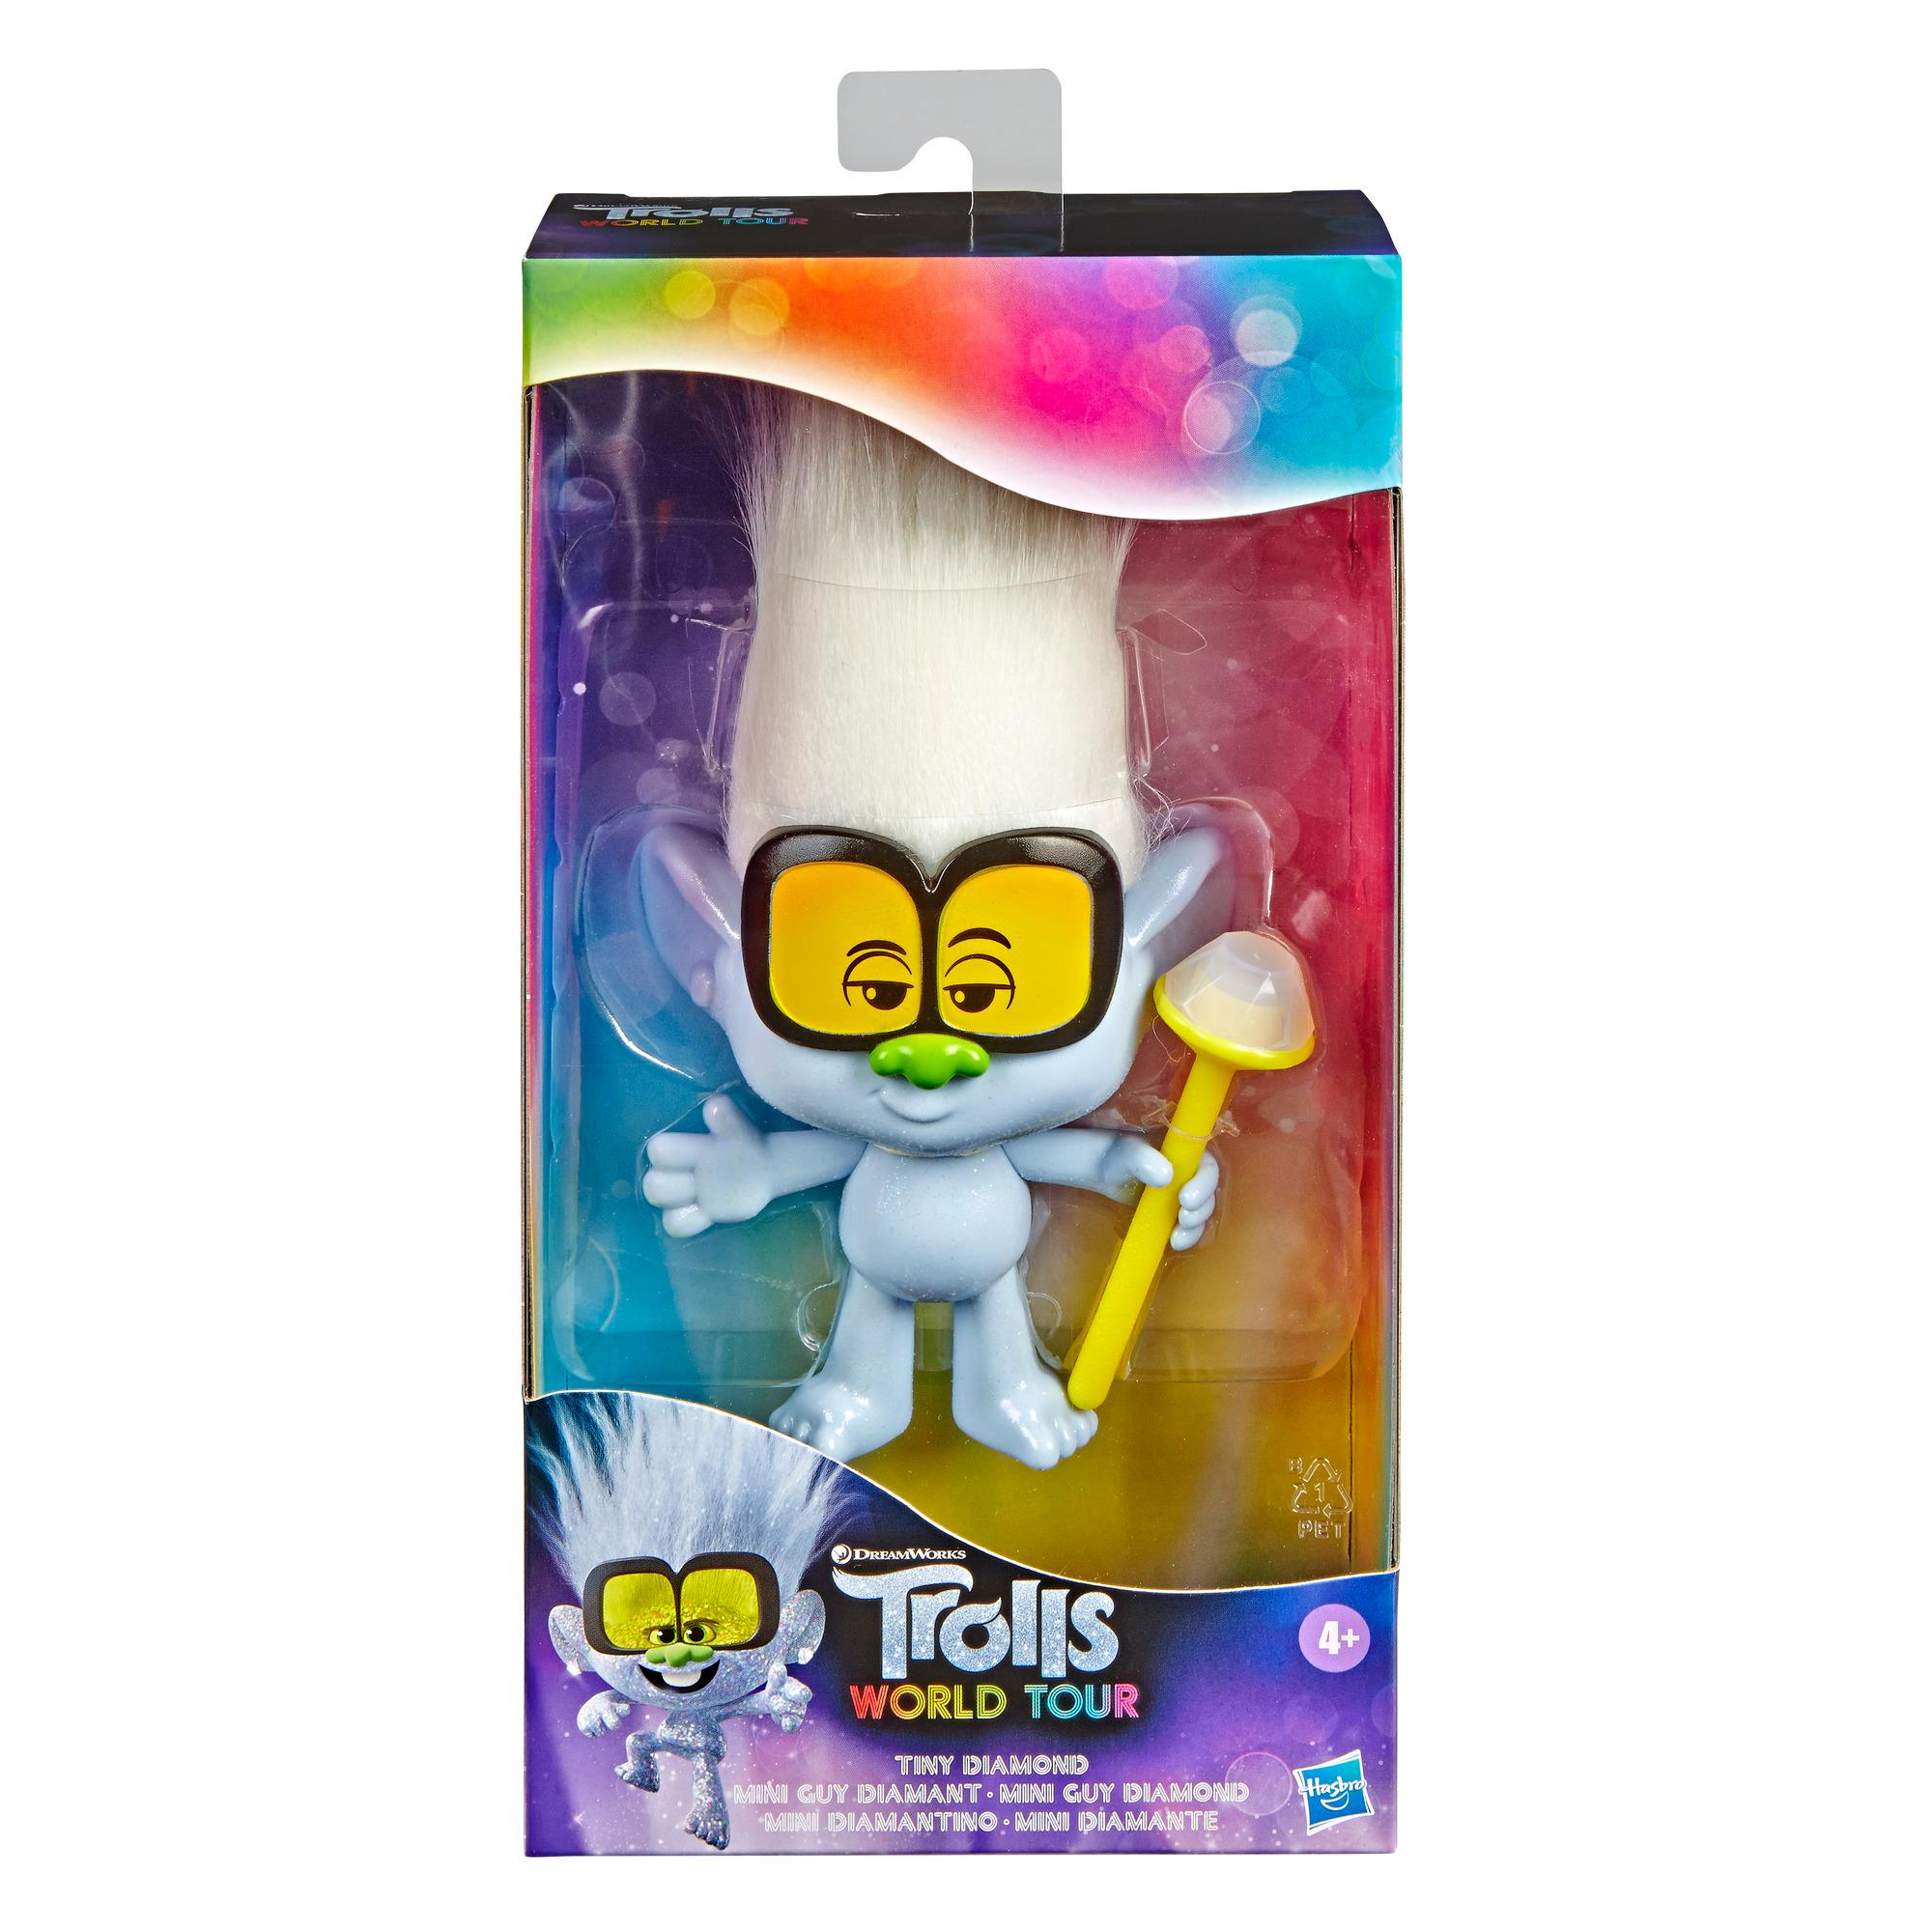 DreamWorks Trolls Tiny Diamond Doll with Scepter, Inspired by Trolls World Tour, Toy for Girls 4 Years and Up